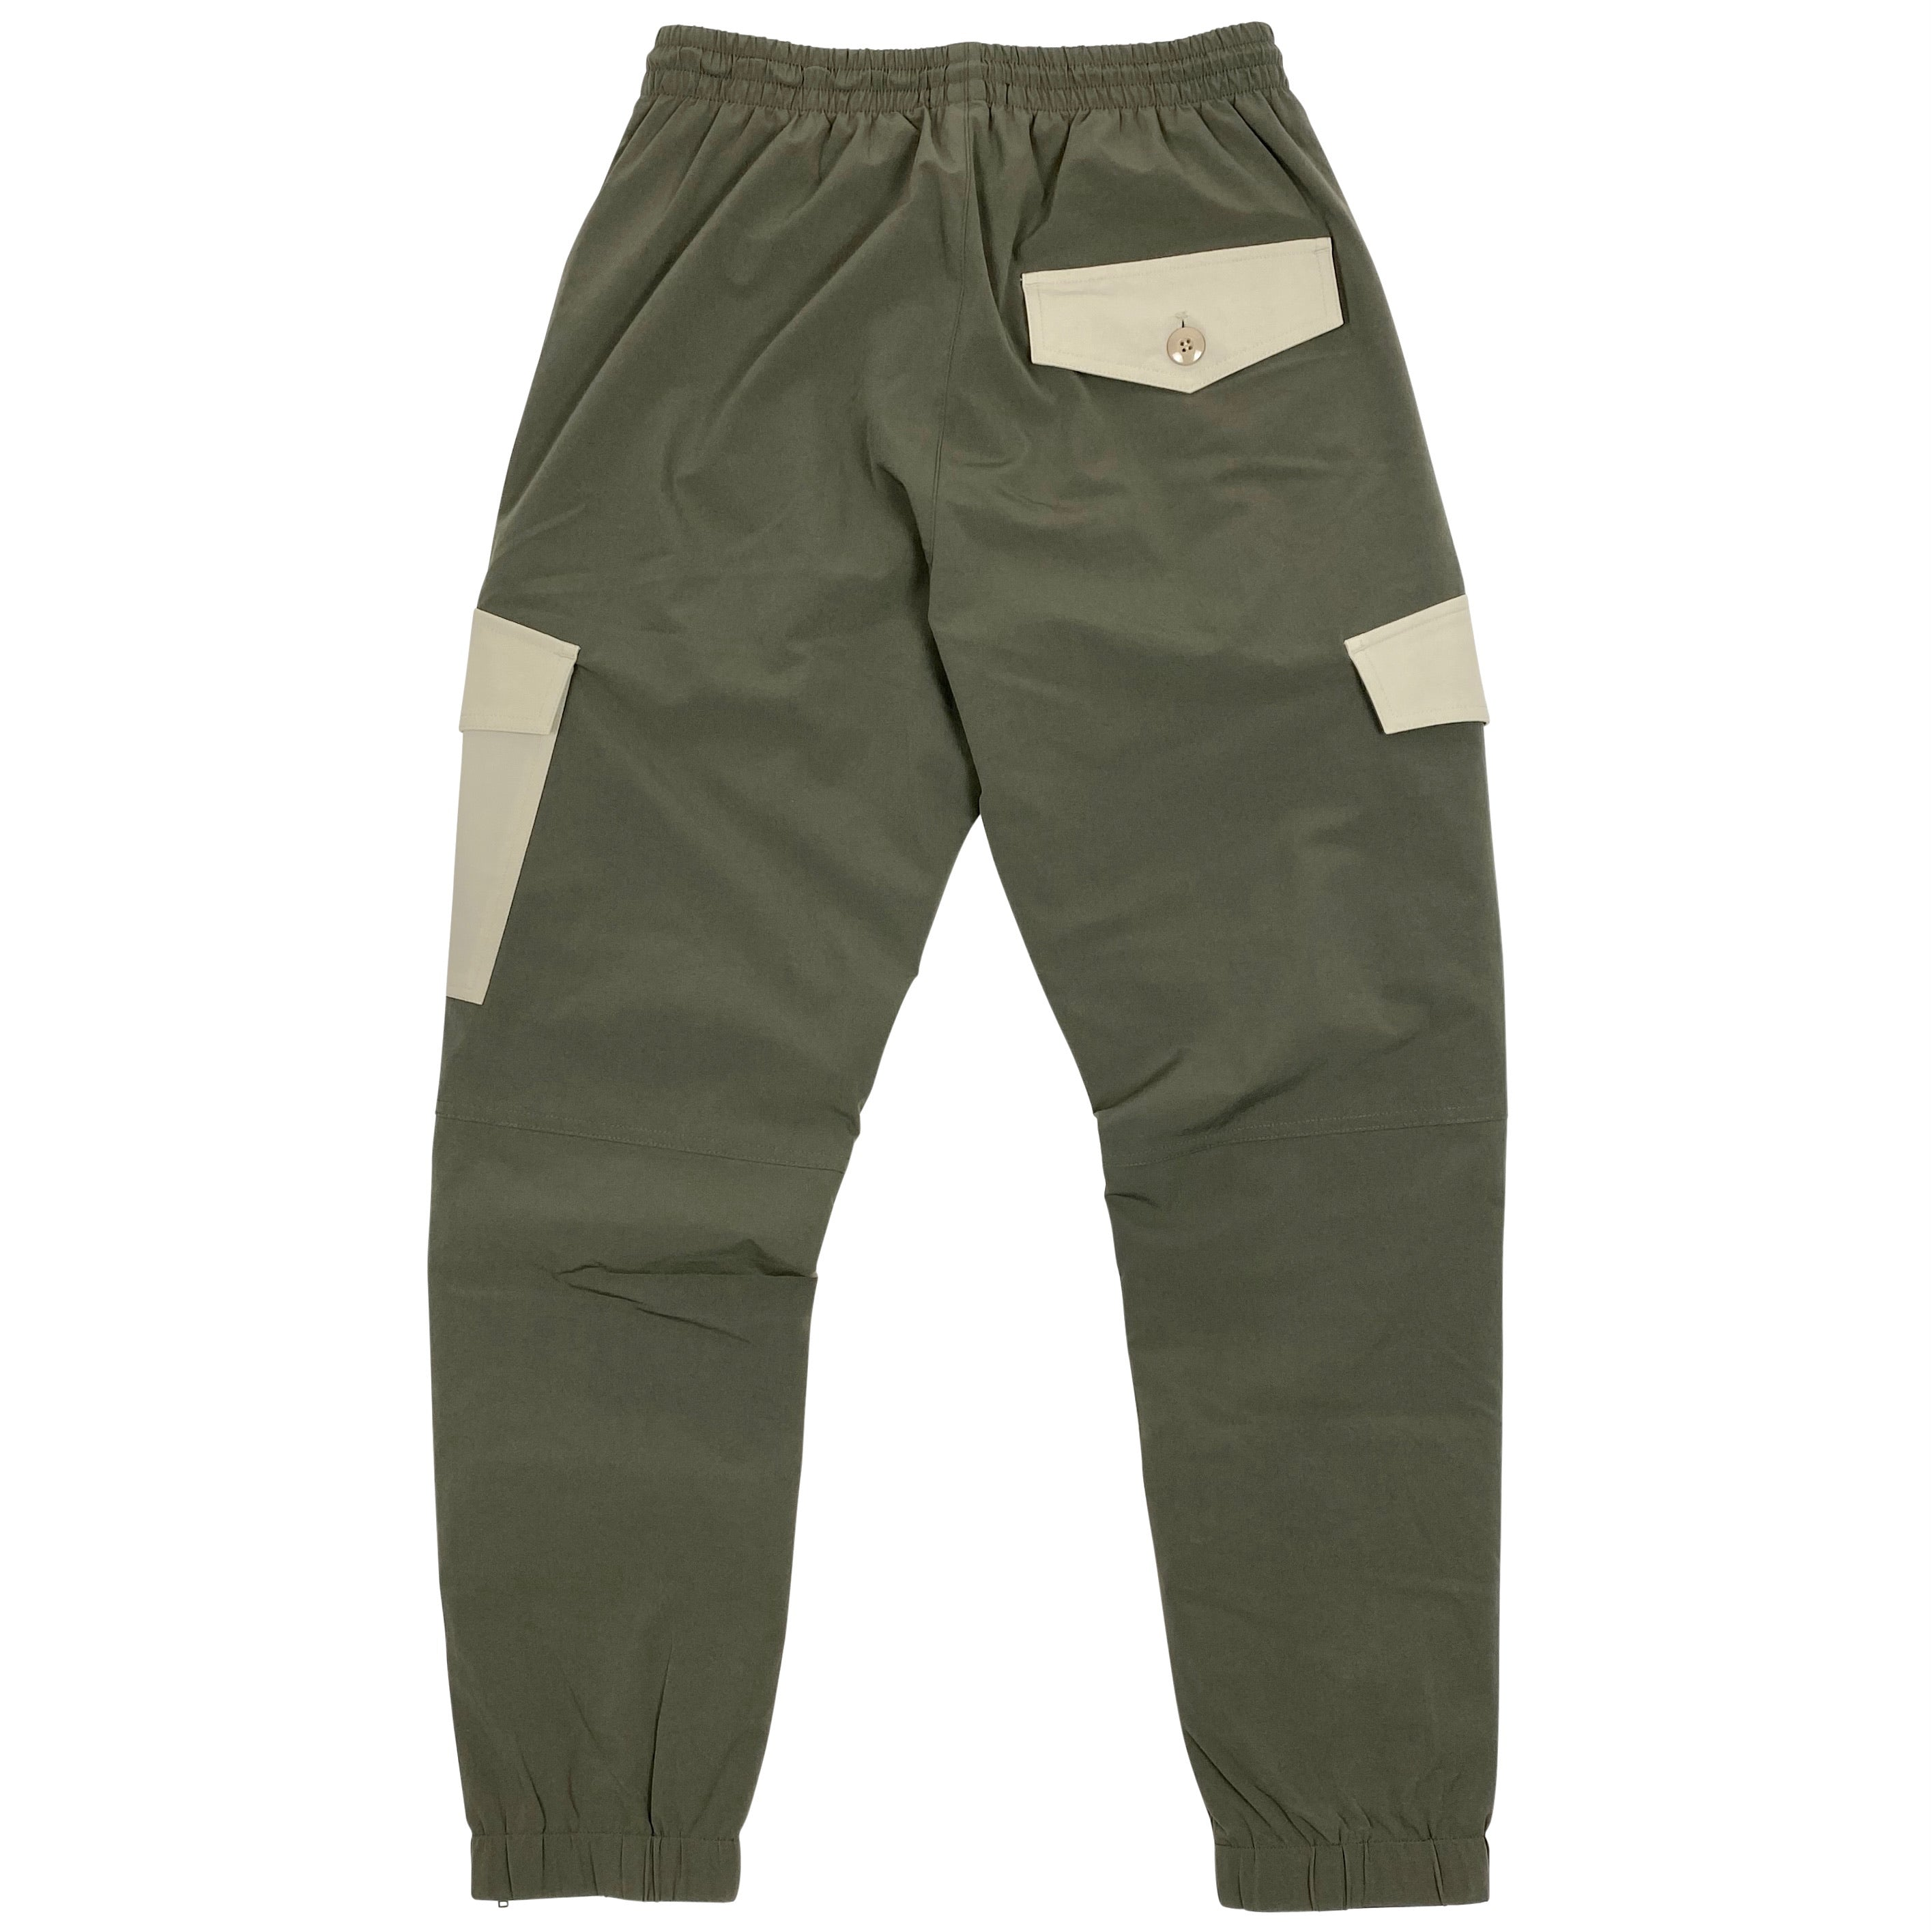 Angled Cargo Pant - Matte Olive